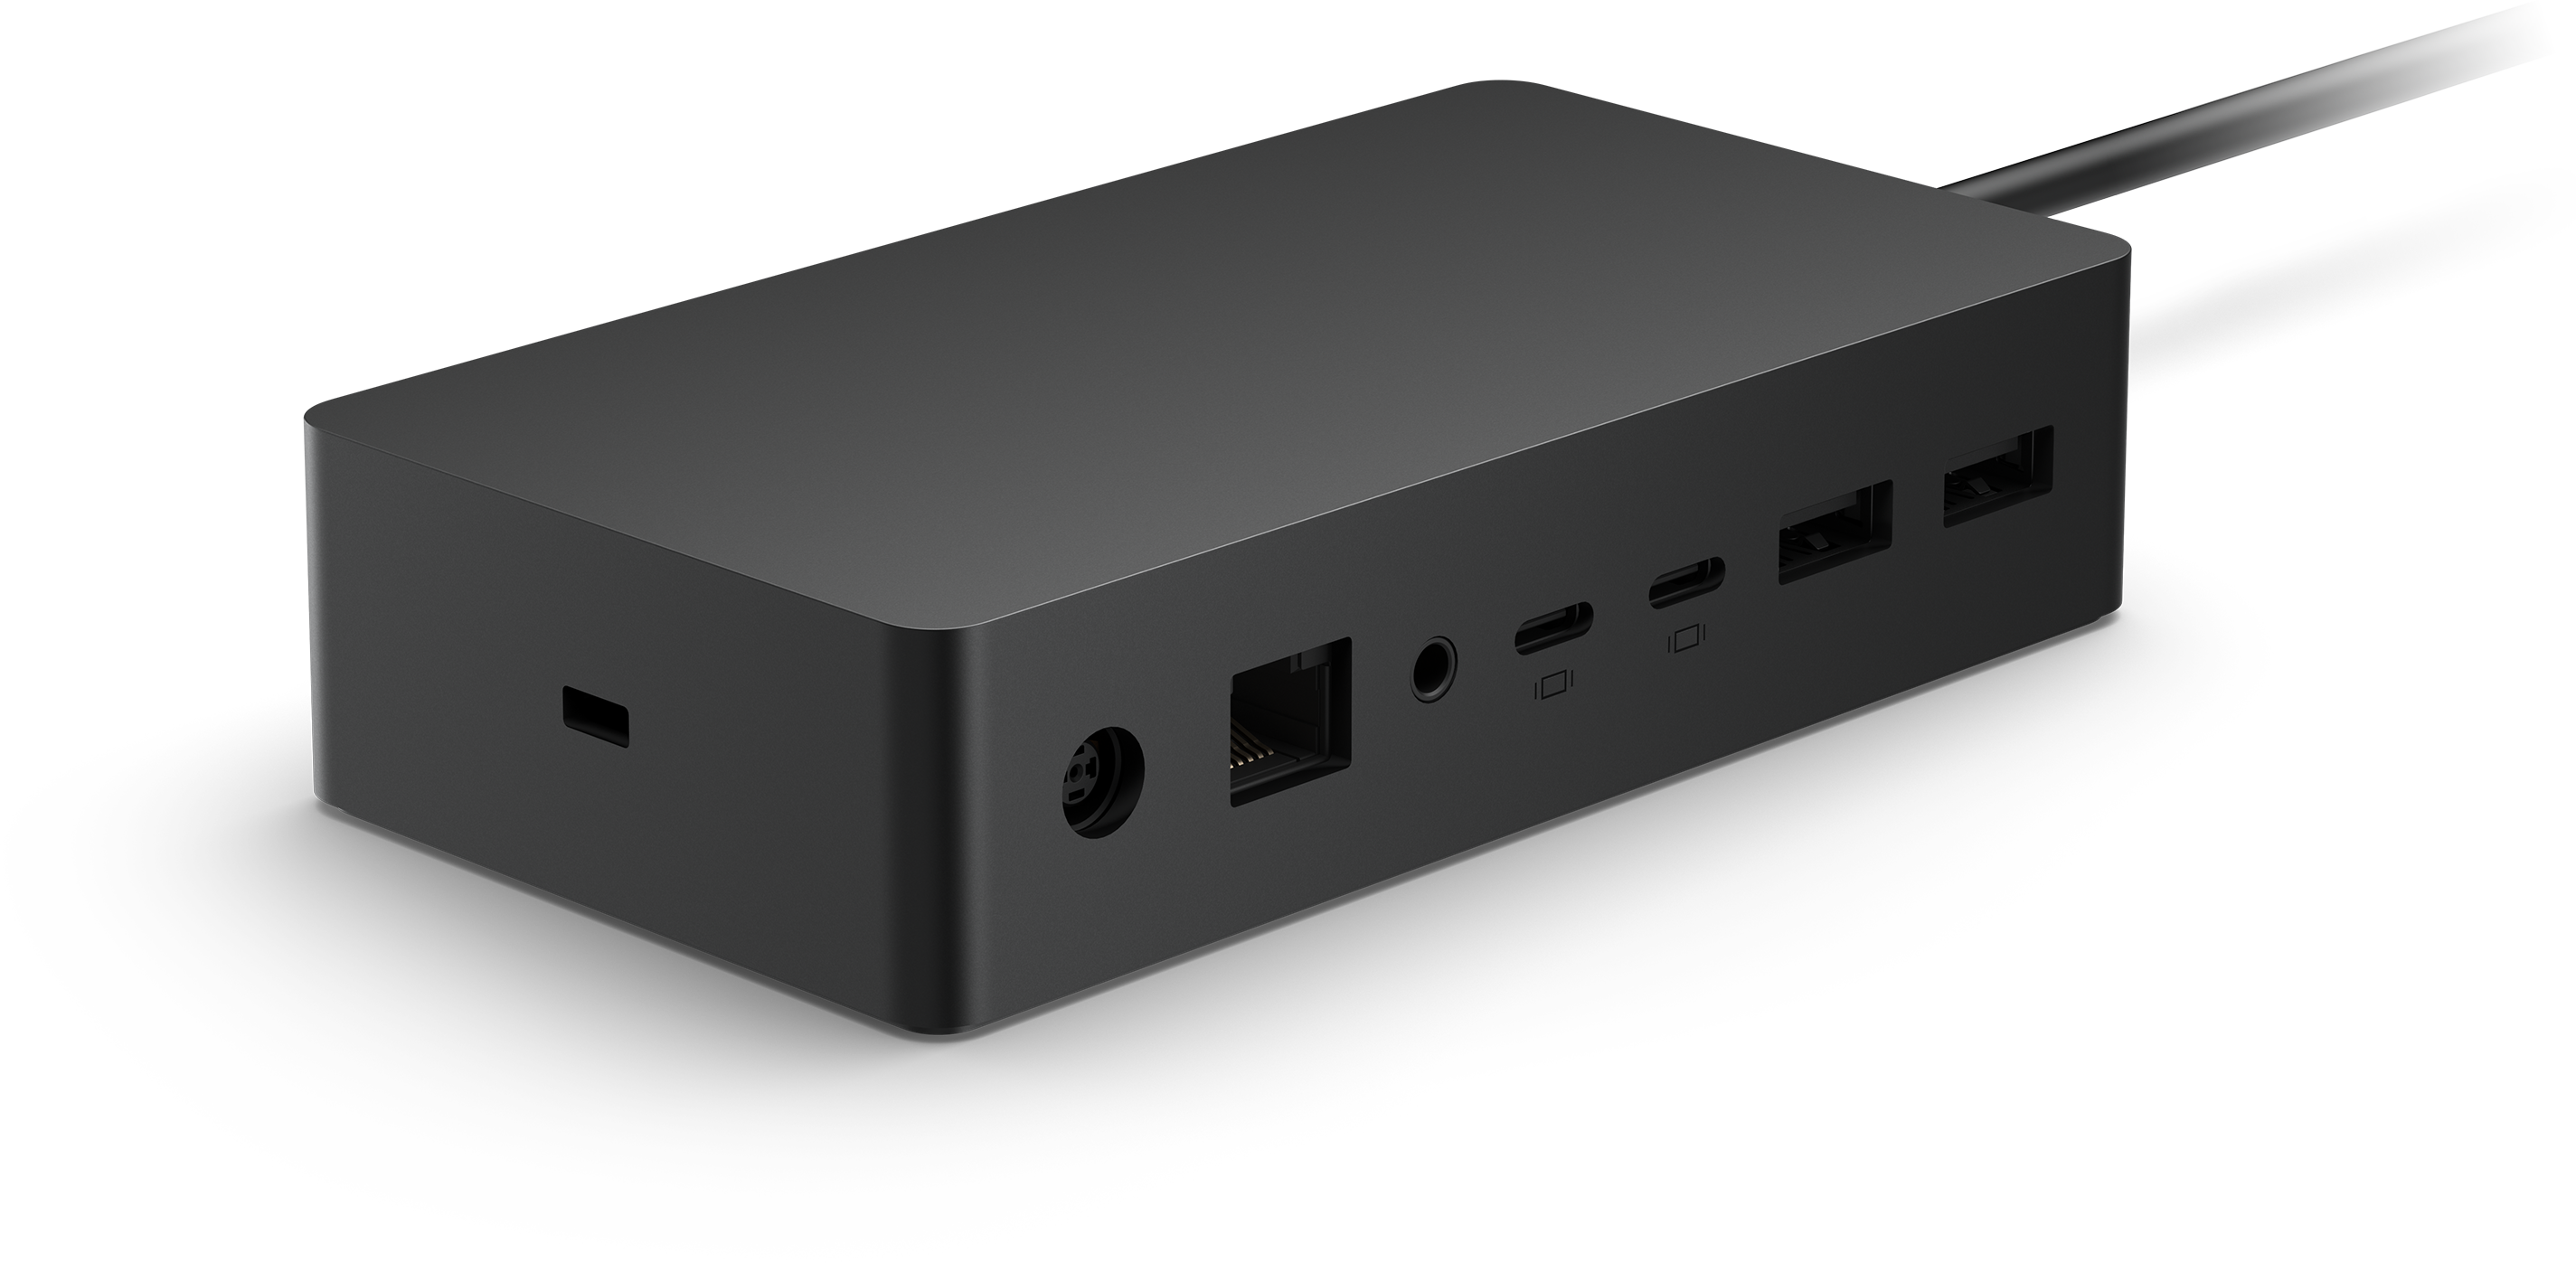 Surface Dock 2 for Business Bring more power to your workstation. Surface Dock 2 transforms your Surface into a desktop PC, with a 199 W power supply to charge most Surface devices, plus USB-C®¹ ports that support dual 4K monitors at 60 Hz. Simply plug in the Surface Connect cable to charge your device and access external monitors, a keyboard, mouse, and more.